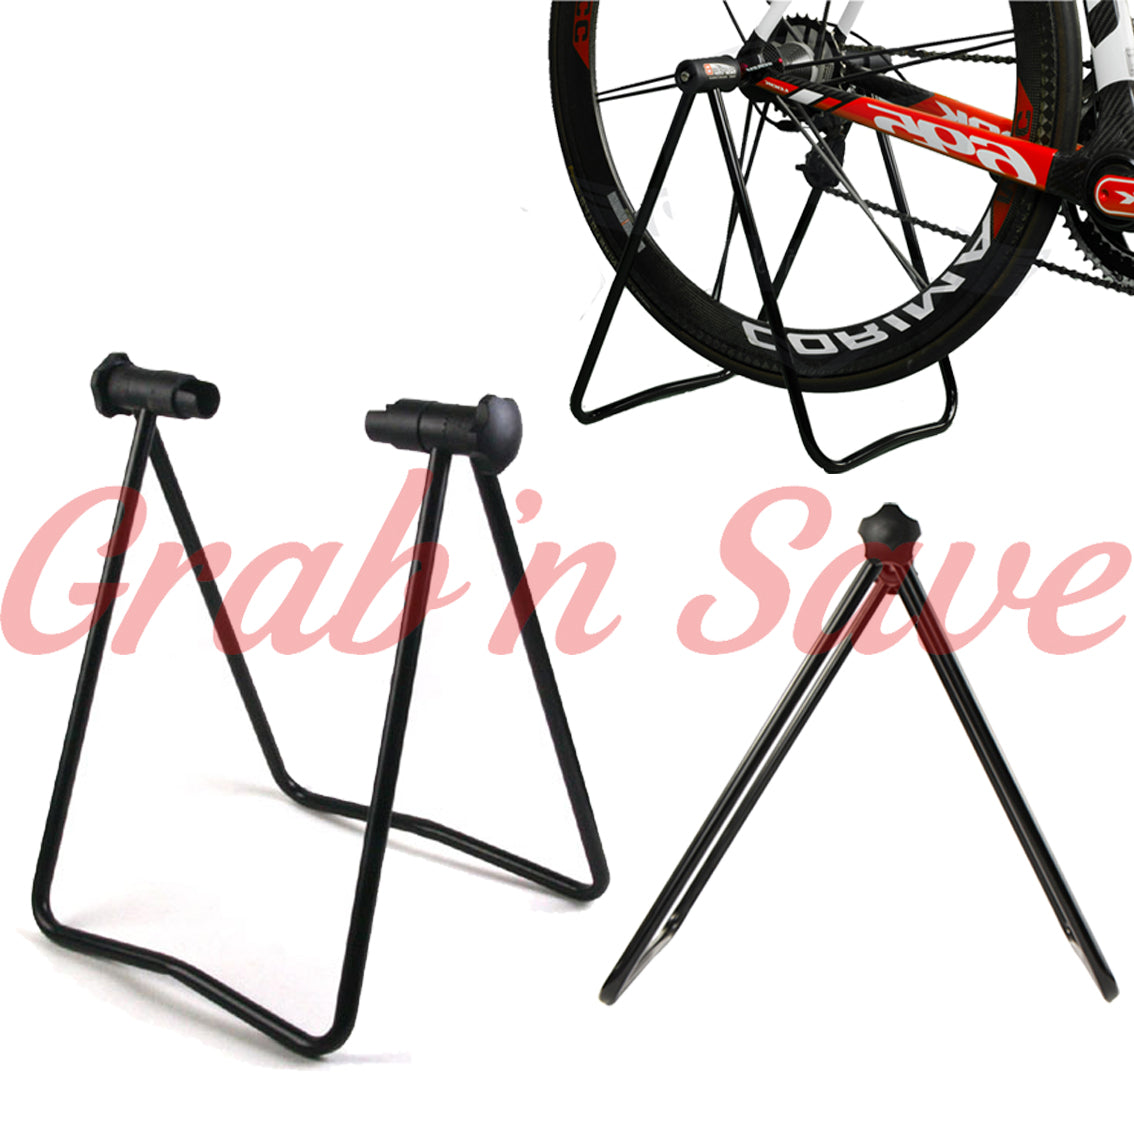 Bike Stand, Bike Repair Stand, Bike Rack